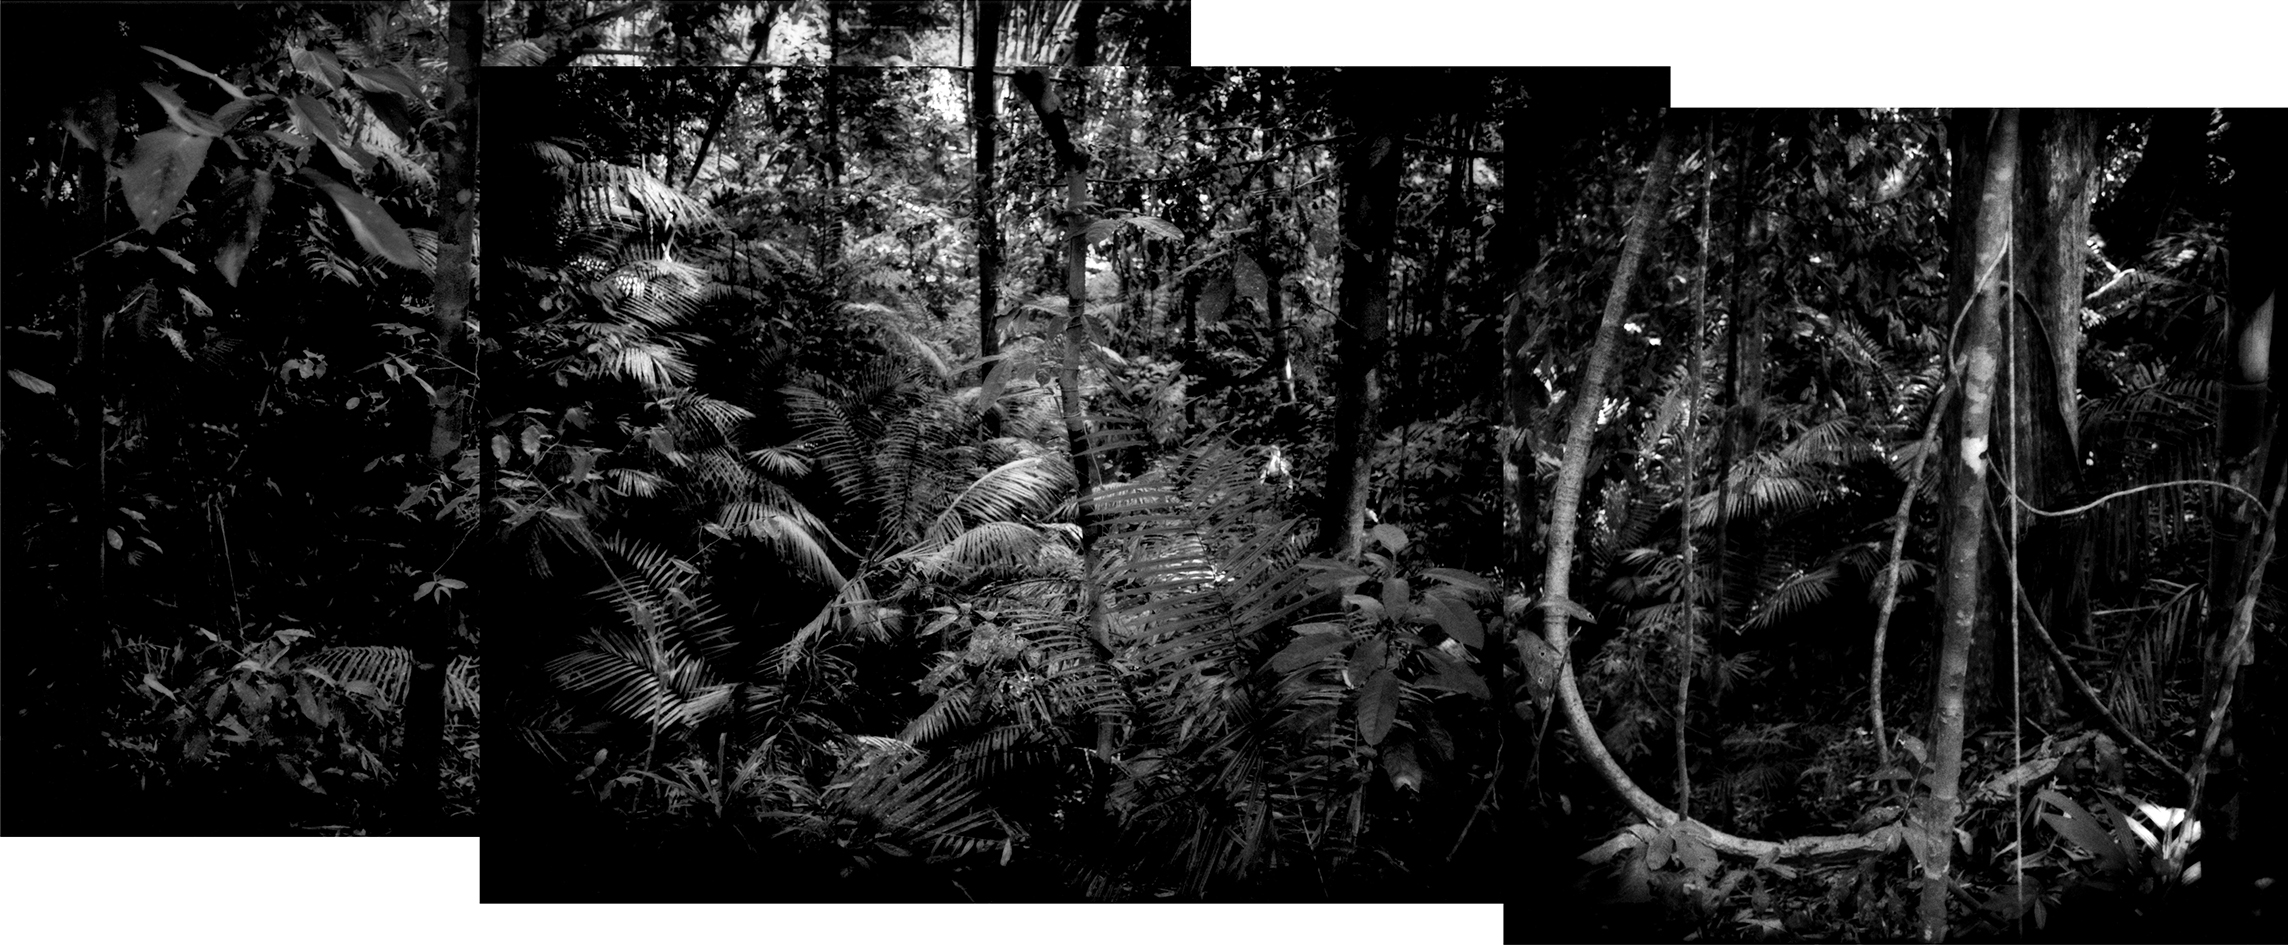 Palms in the undercanopy of the rainforest in Taman Negara National Park, 434,300 hectares (4,343 sq. km / 1,676 sq. miles) of protected 130 million year old primary rainforest that supports tigers, sumatran rhinoceros, Asian elephants, Malaysian gaur (wild bovine), tapir, gibbons, monkeys totaling over 200 species of terrestrial animals, over 300 species of birds and over 1,000 species of butterfly. Malaysia's dwindling rainforests are home to over 14,500 species of flowering plants and trees. This is the homeland of the Batek Negrito people.